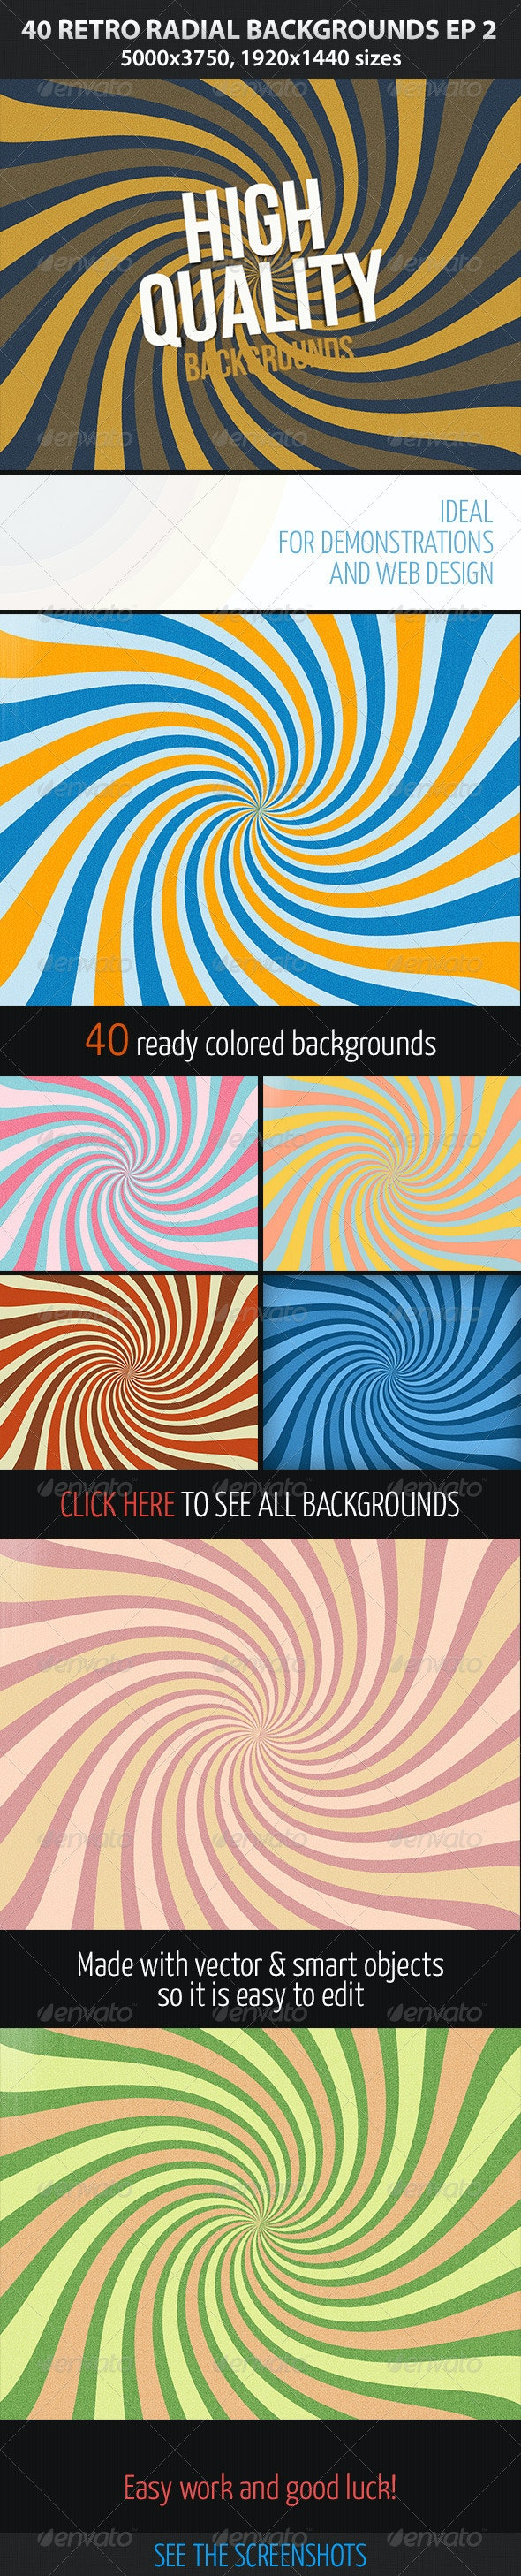 40 Retro Radial Backgrounds EP 2 - Abstract Backgrounds